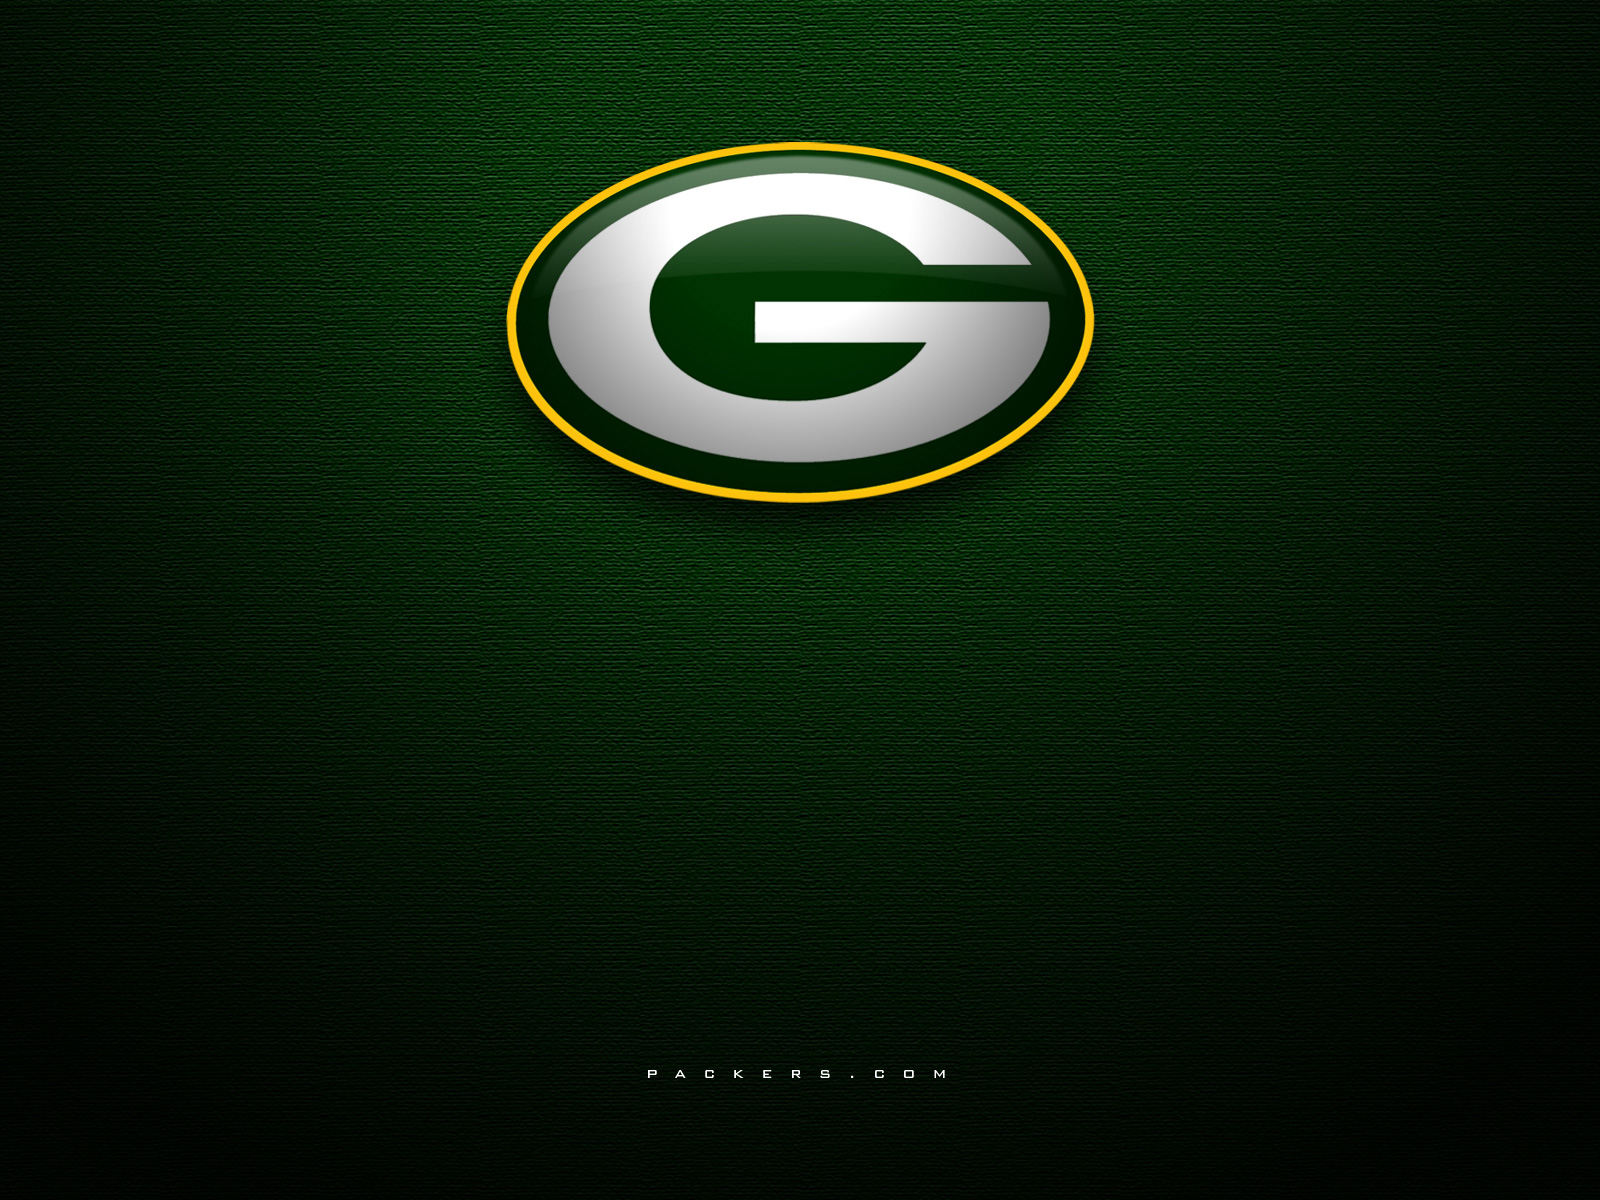 800x600, 1024x768, 1280x1024, 1600x1200. Packers players wallpaper: